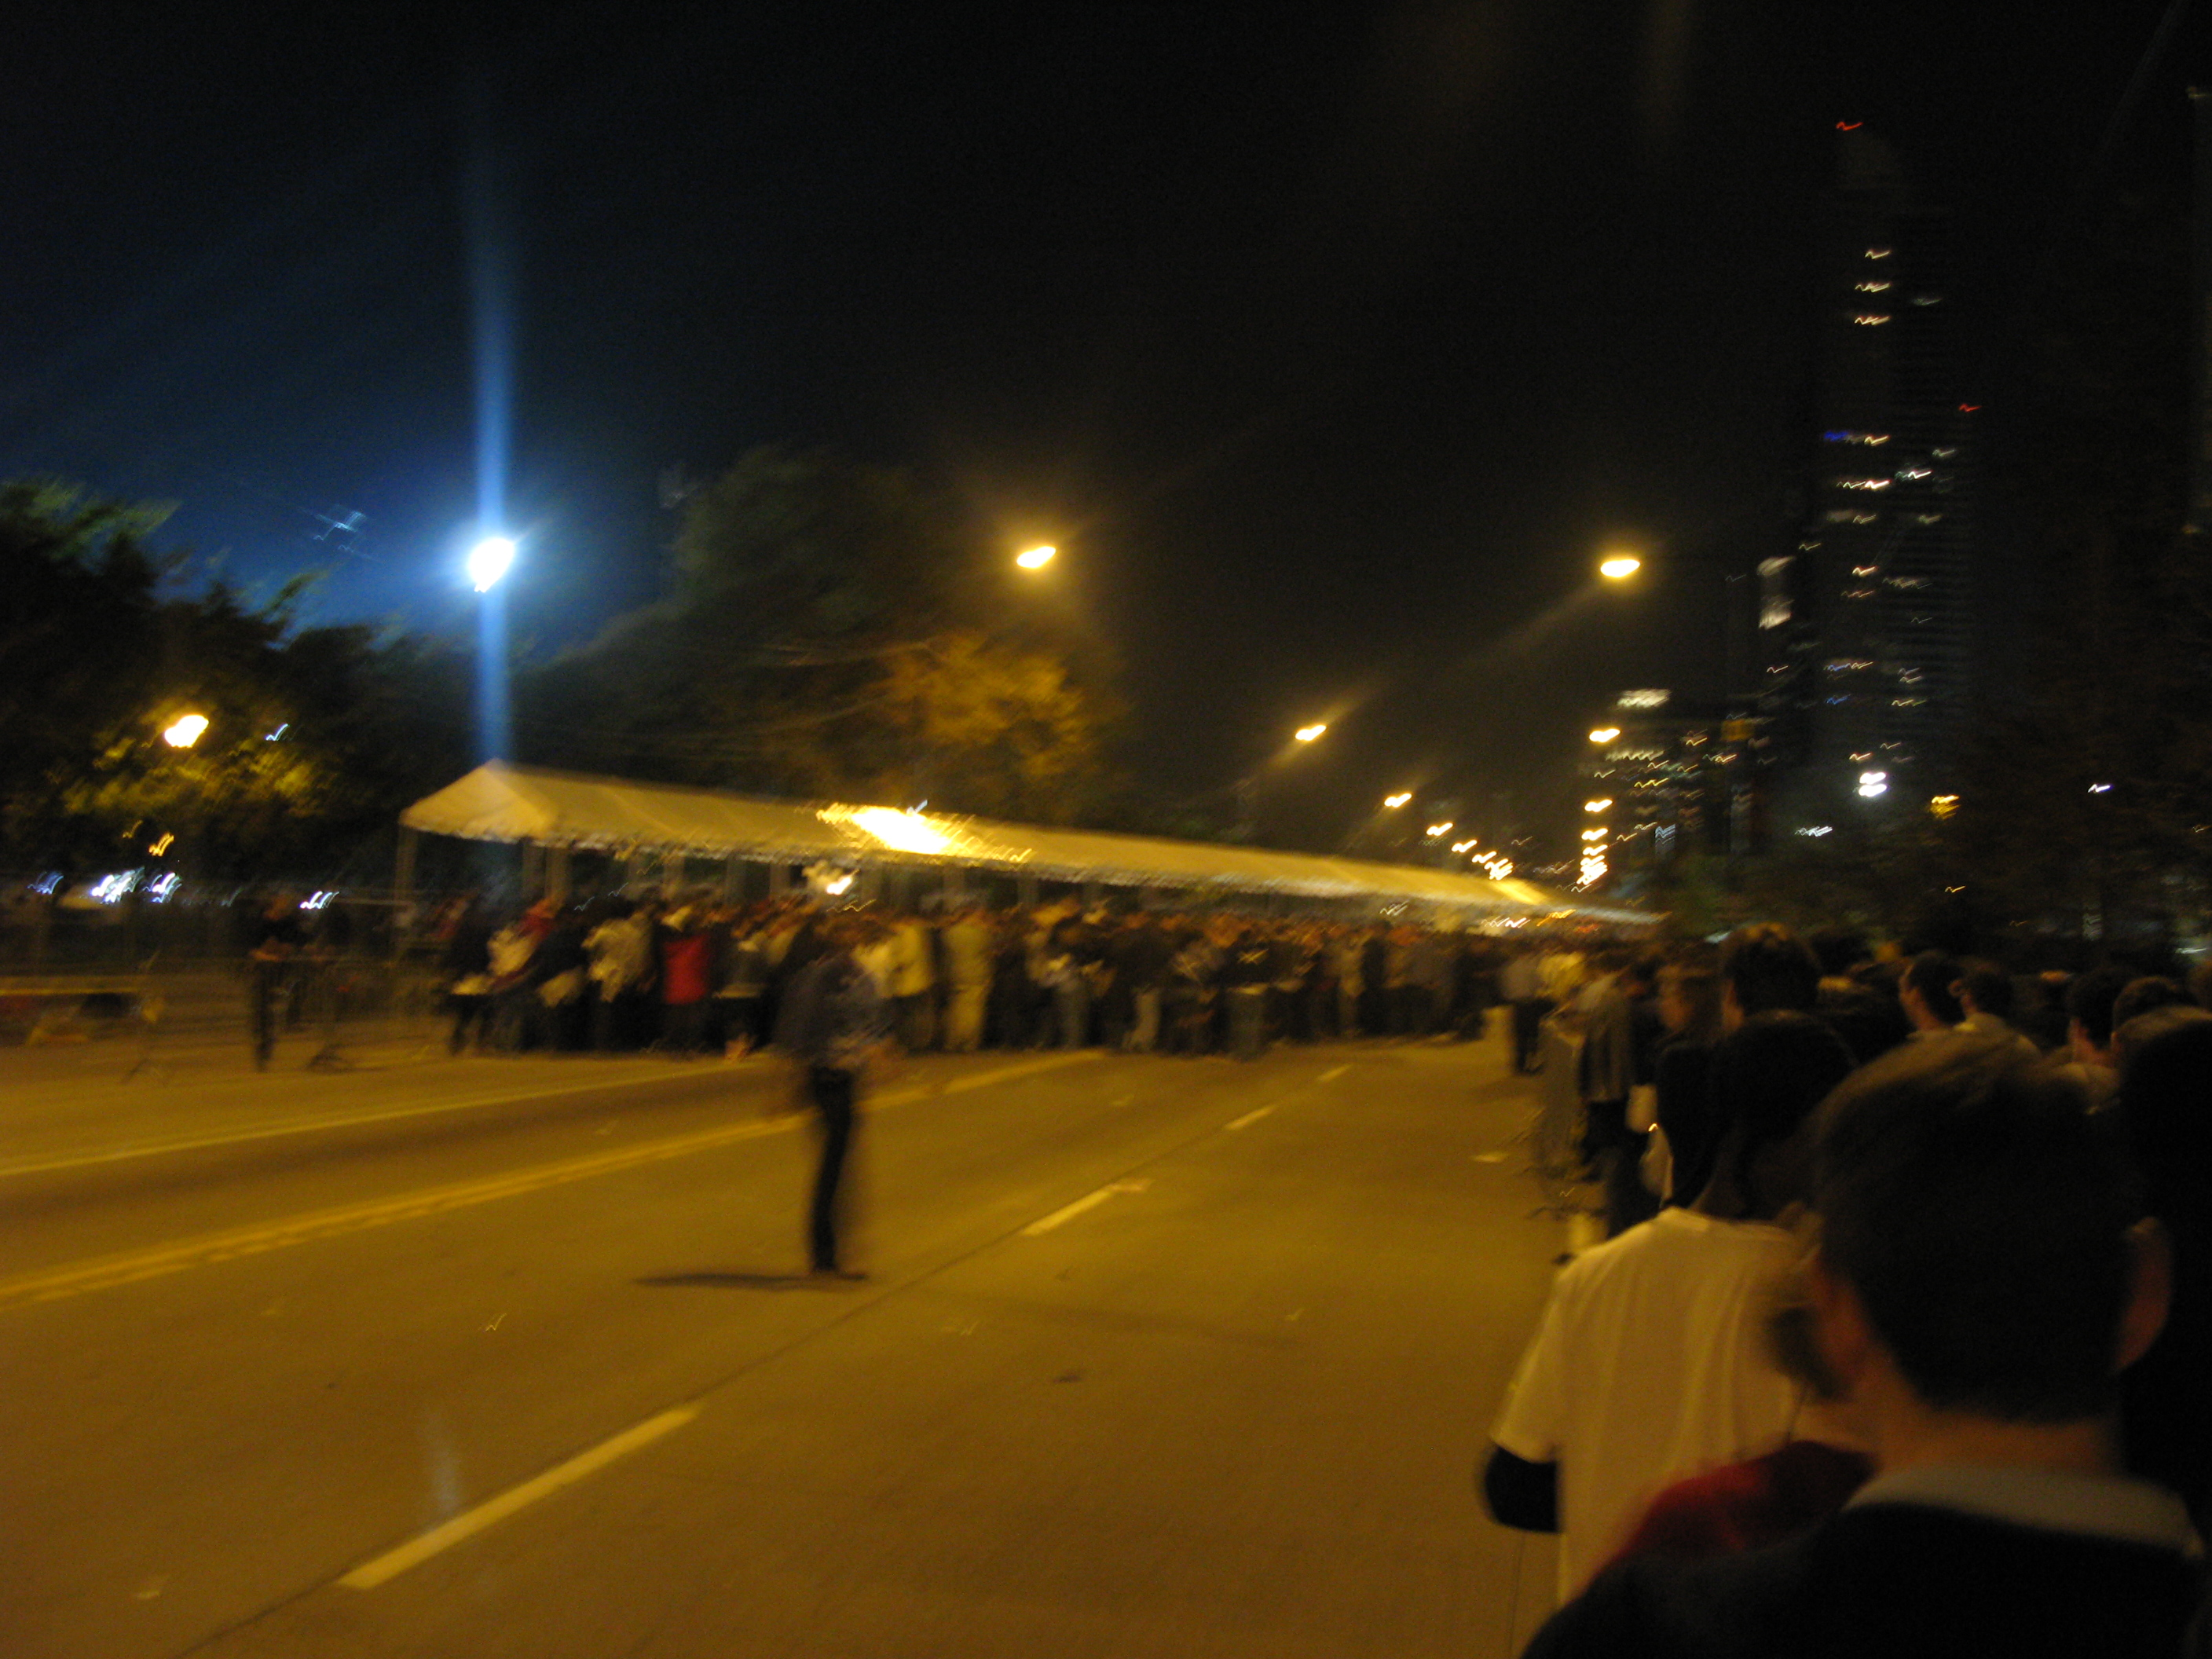 FileApproaching the security tent (3005672566).jpg & File:Approaching the security tent (3005672566).jpg - Wikimedia ...